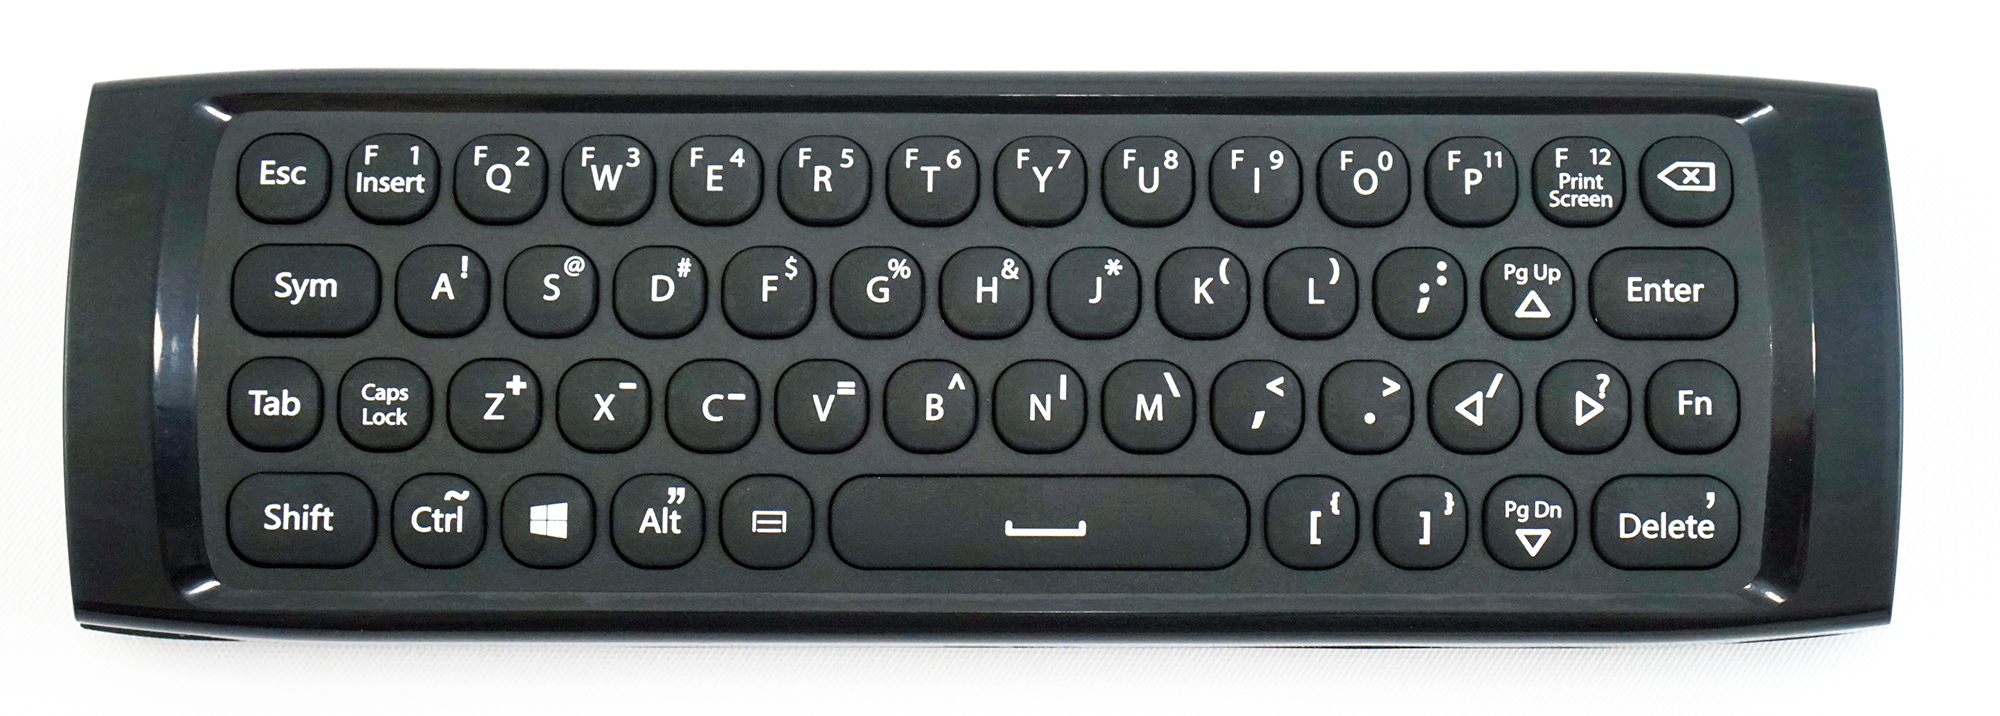 The reverse side of the Lynk includes a full mobile-style keyboard.